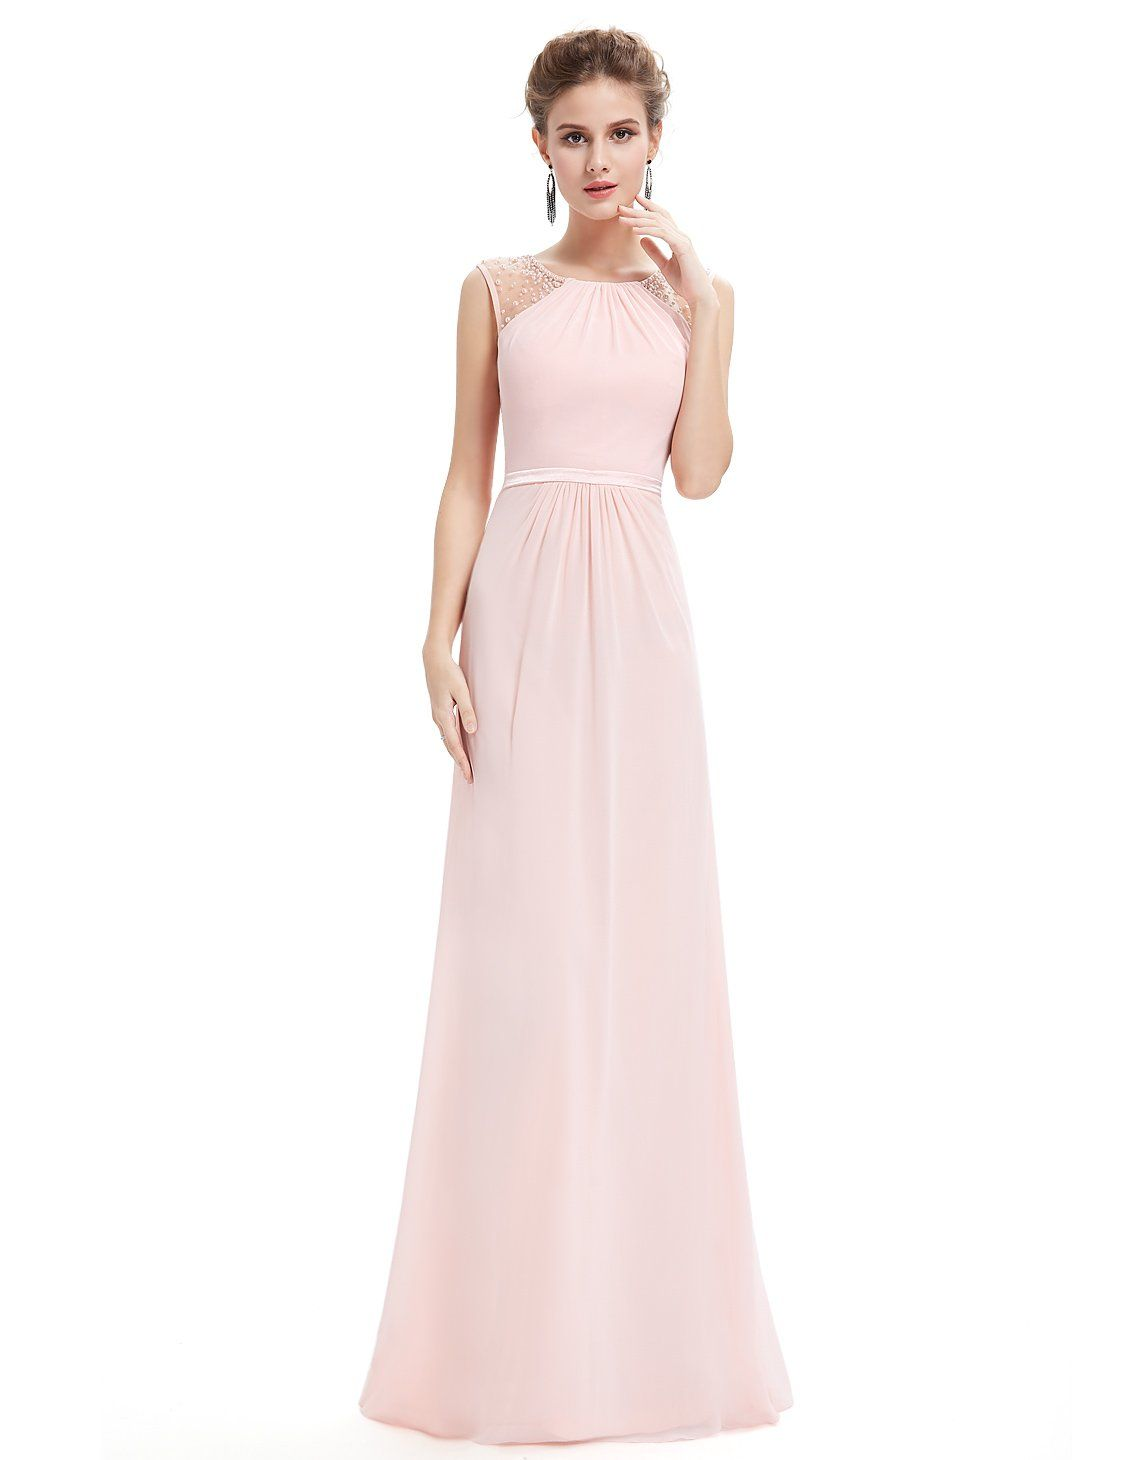 Robe cocktail longue pastel